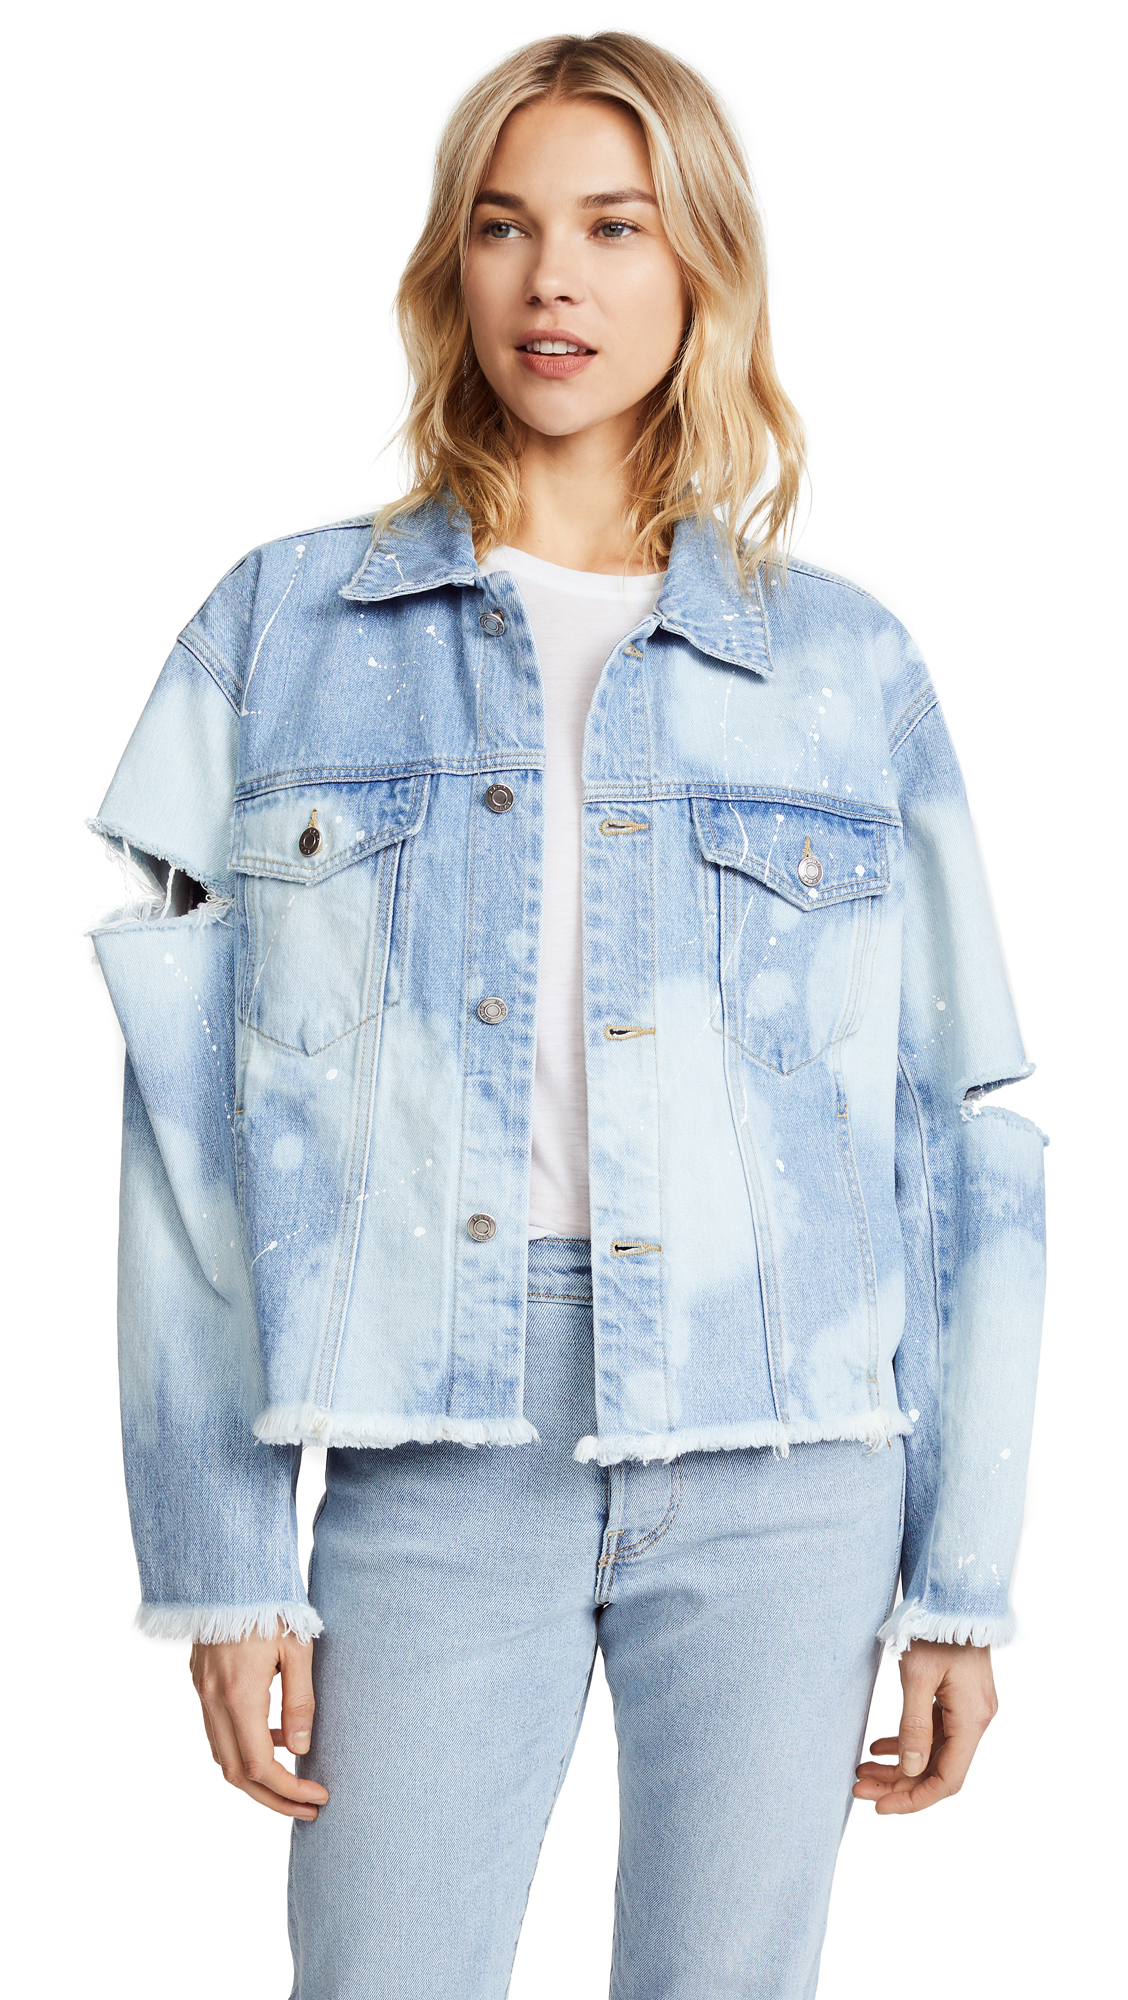 SJYP Washed Denim Jacket - Light Blue